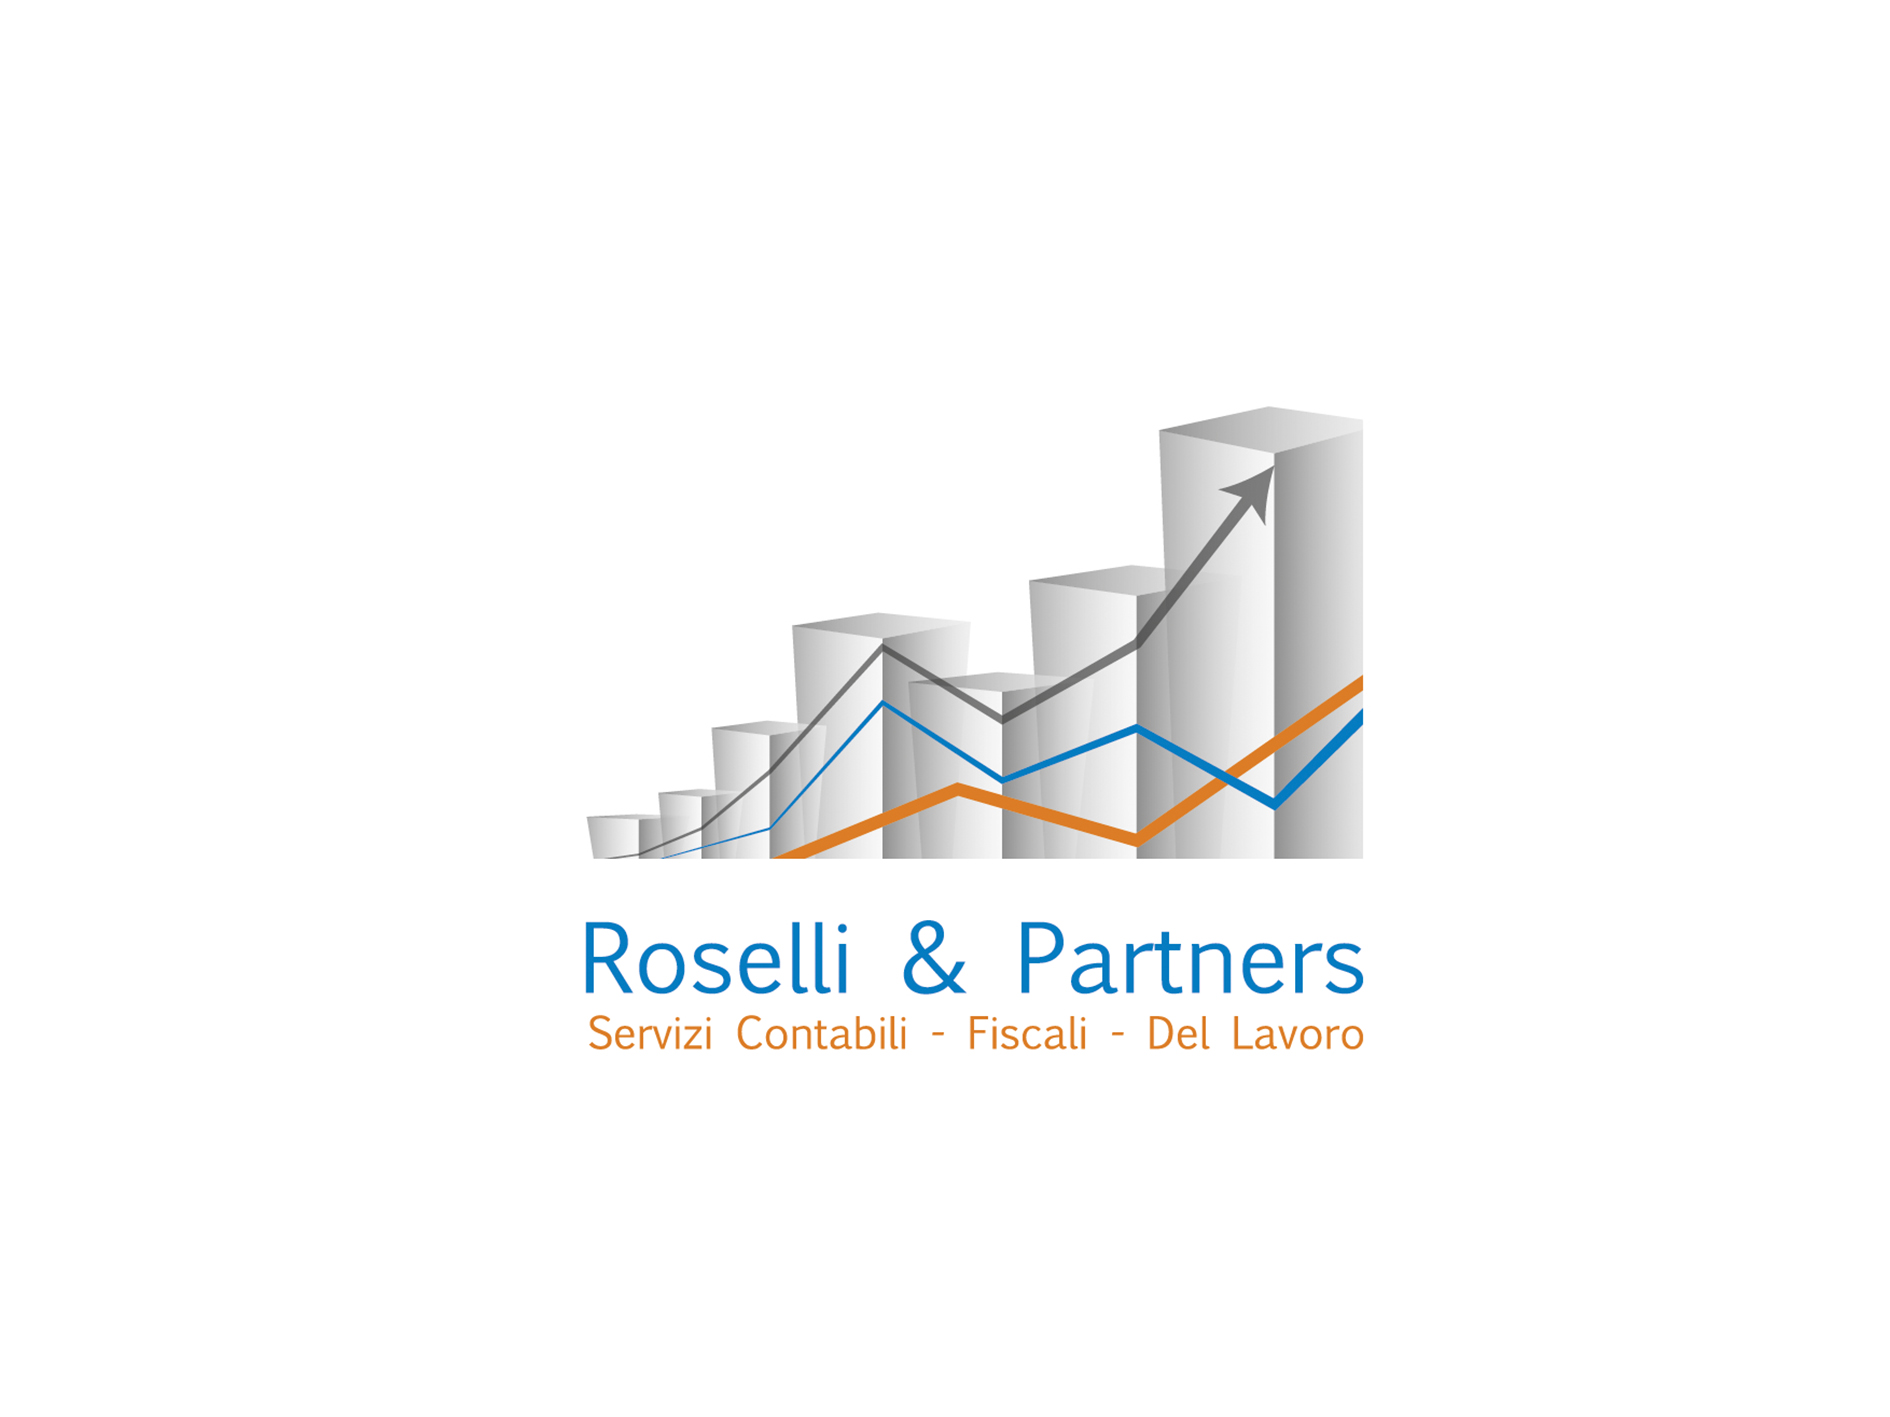 Roselli&Partners Marchio